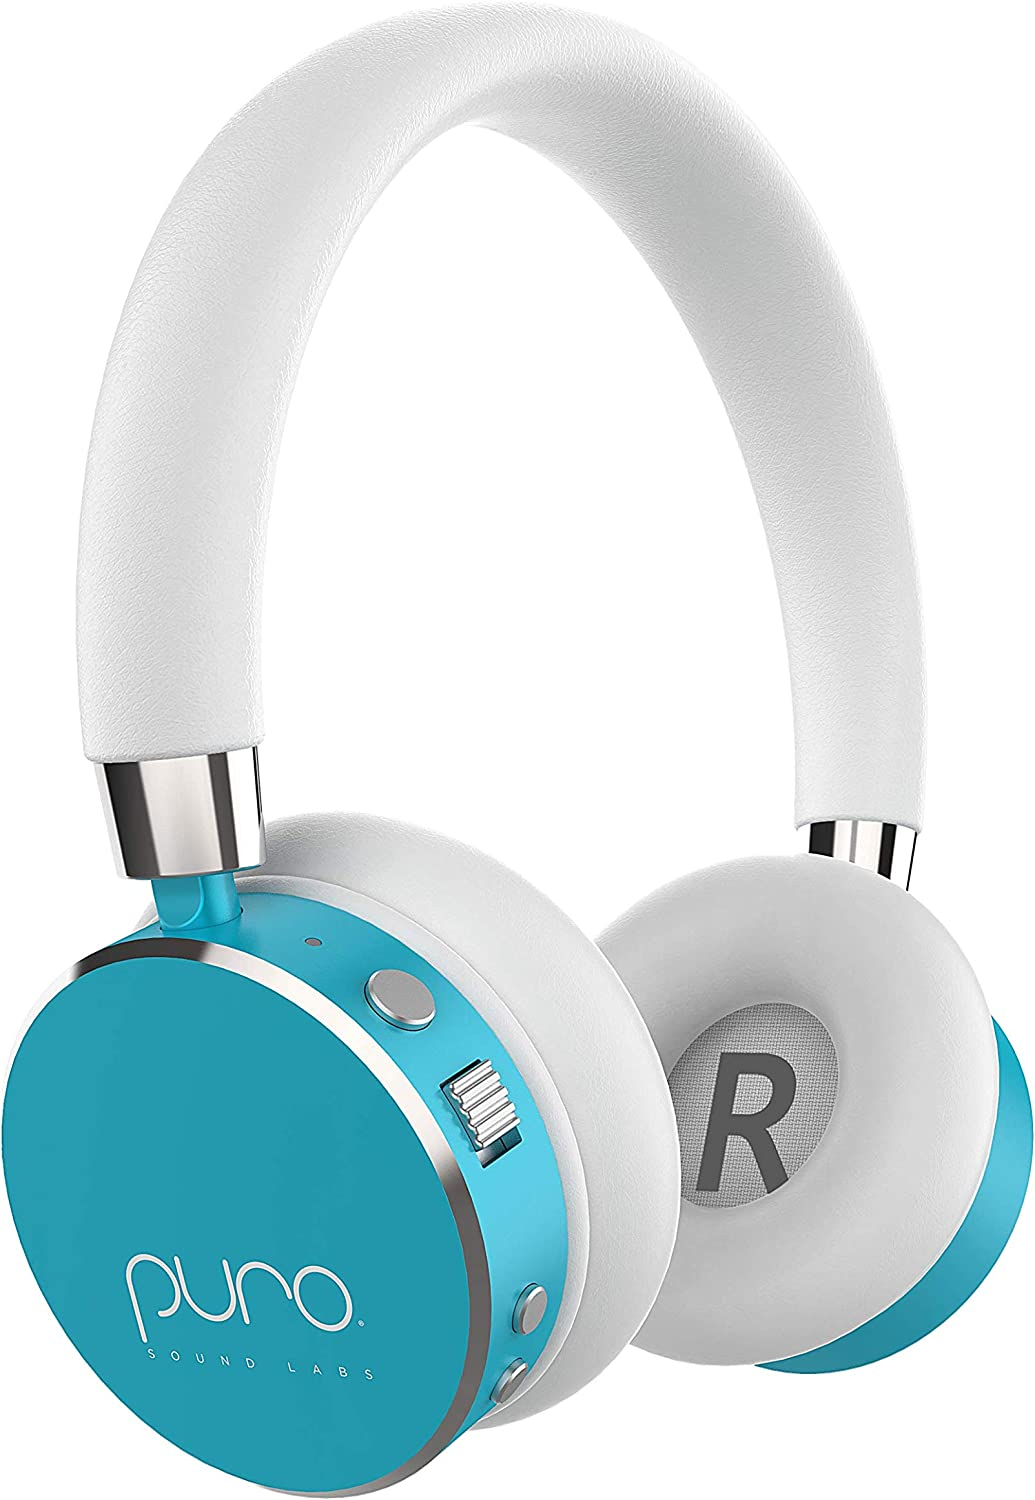 Puro Sound Labs BT2200 Volume Limited Kids' Bluetooth Headphones – Safer Headphones for Kids – Lightweight & Durable – Studio-Grade Audio Quality & Noise Isolation –Carrying Case (Teal)